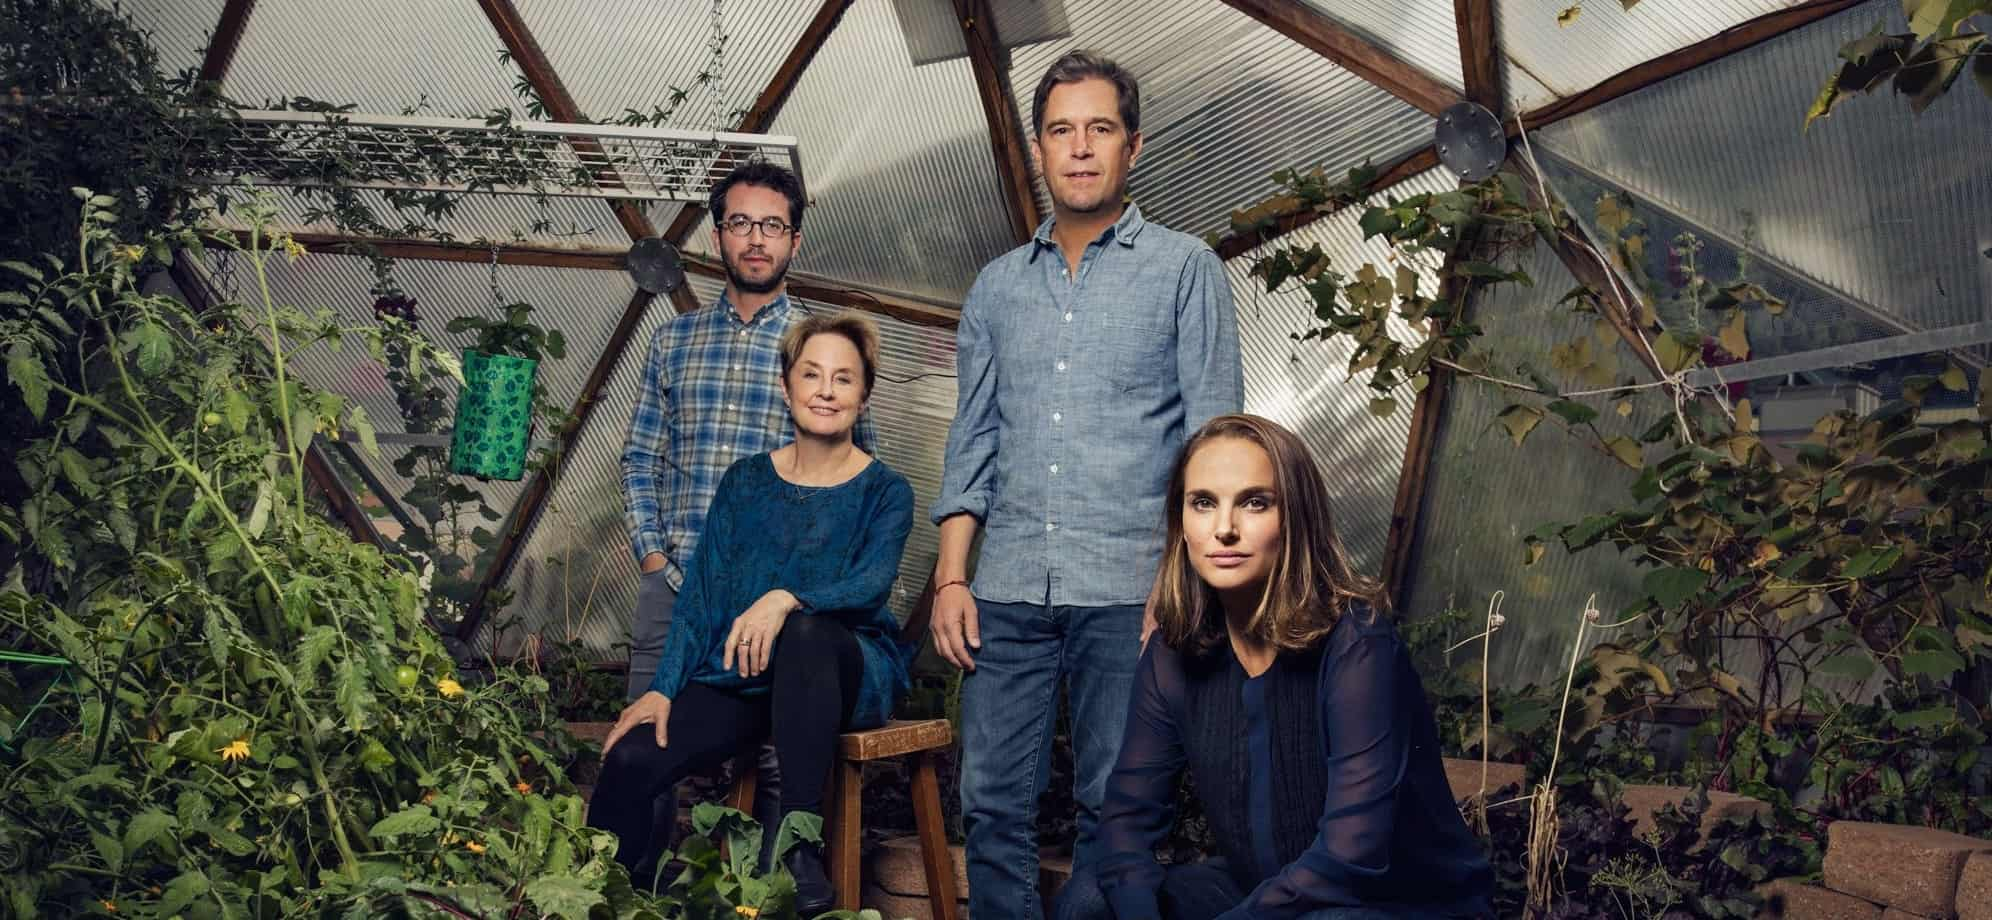 Telluride portraits alice waters natalie.jpgc3  1